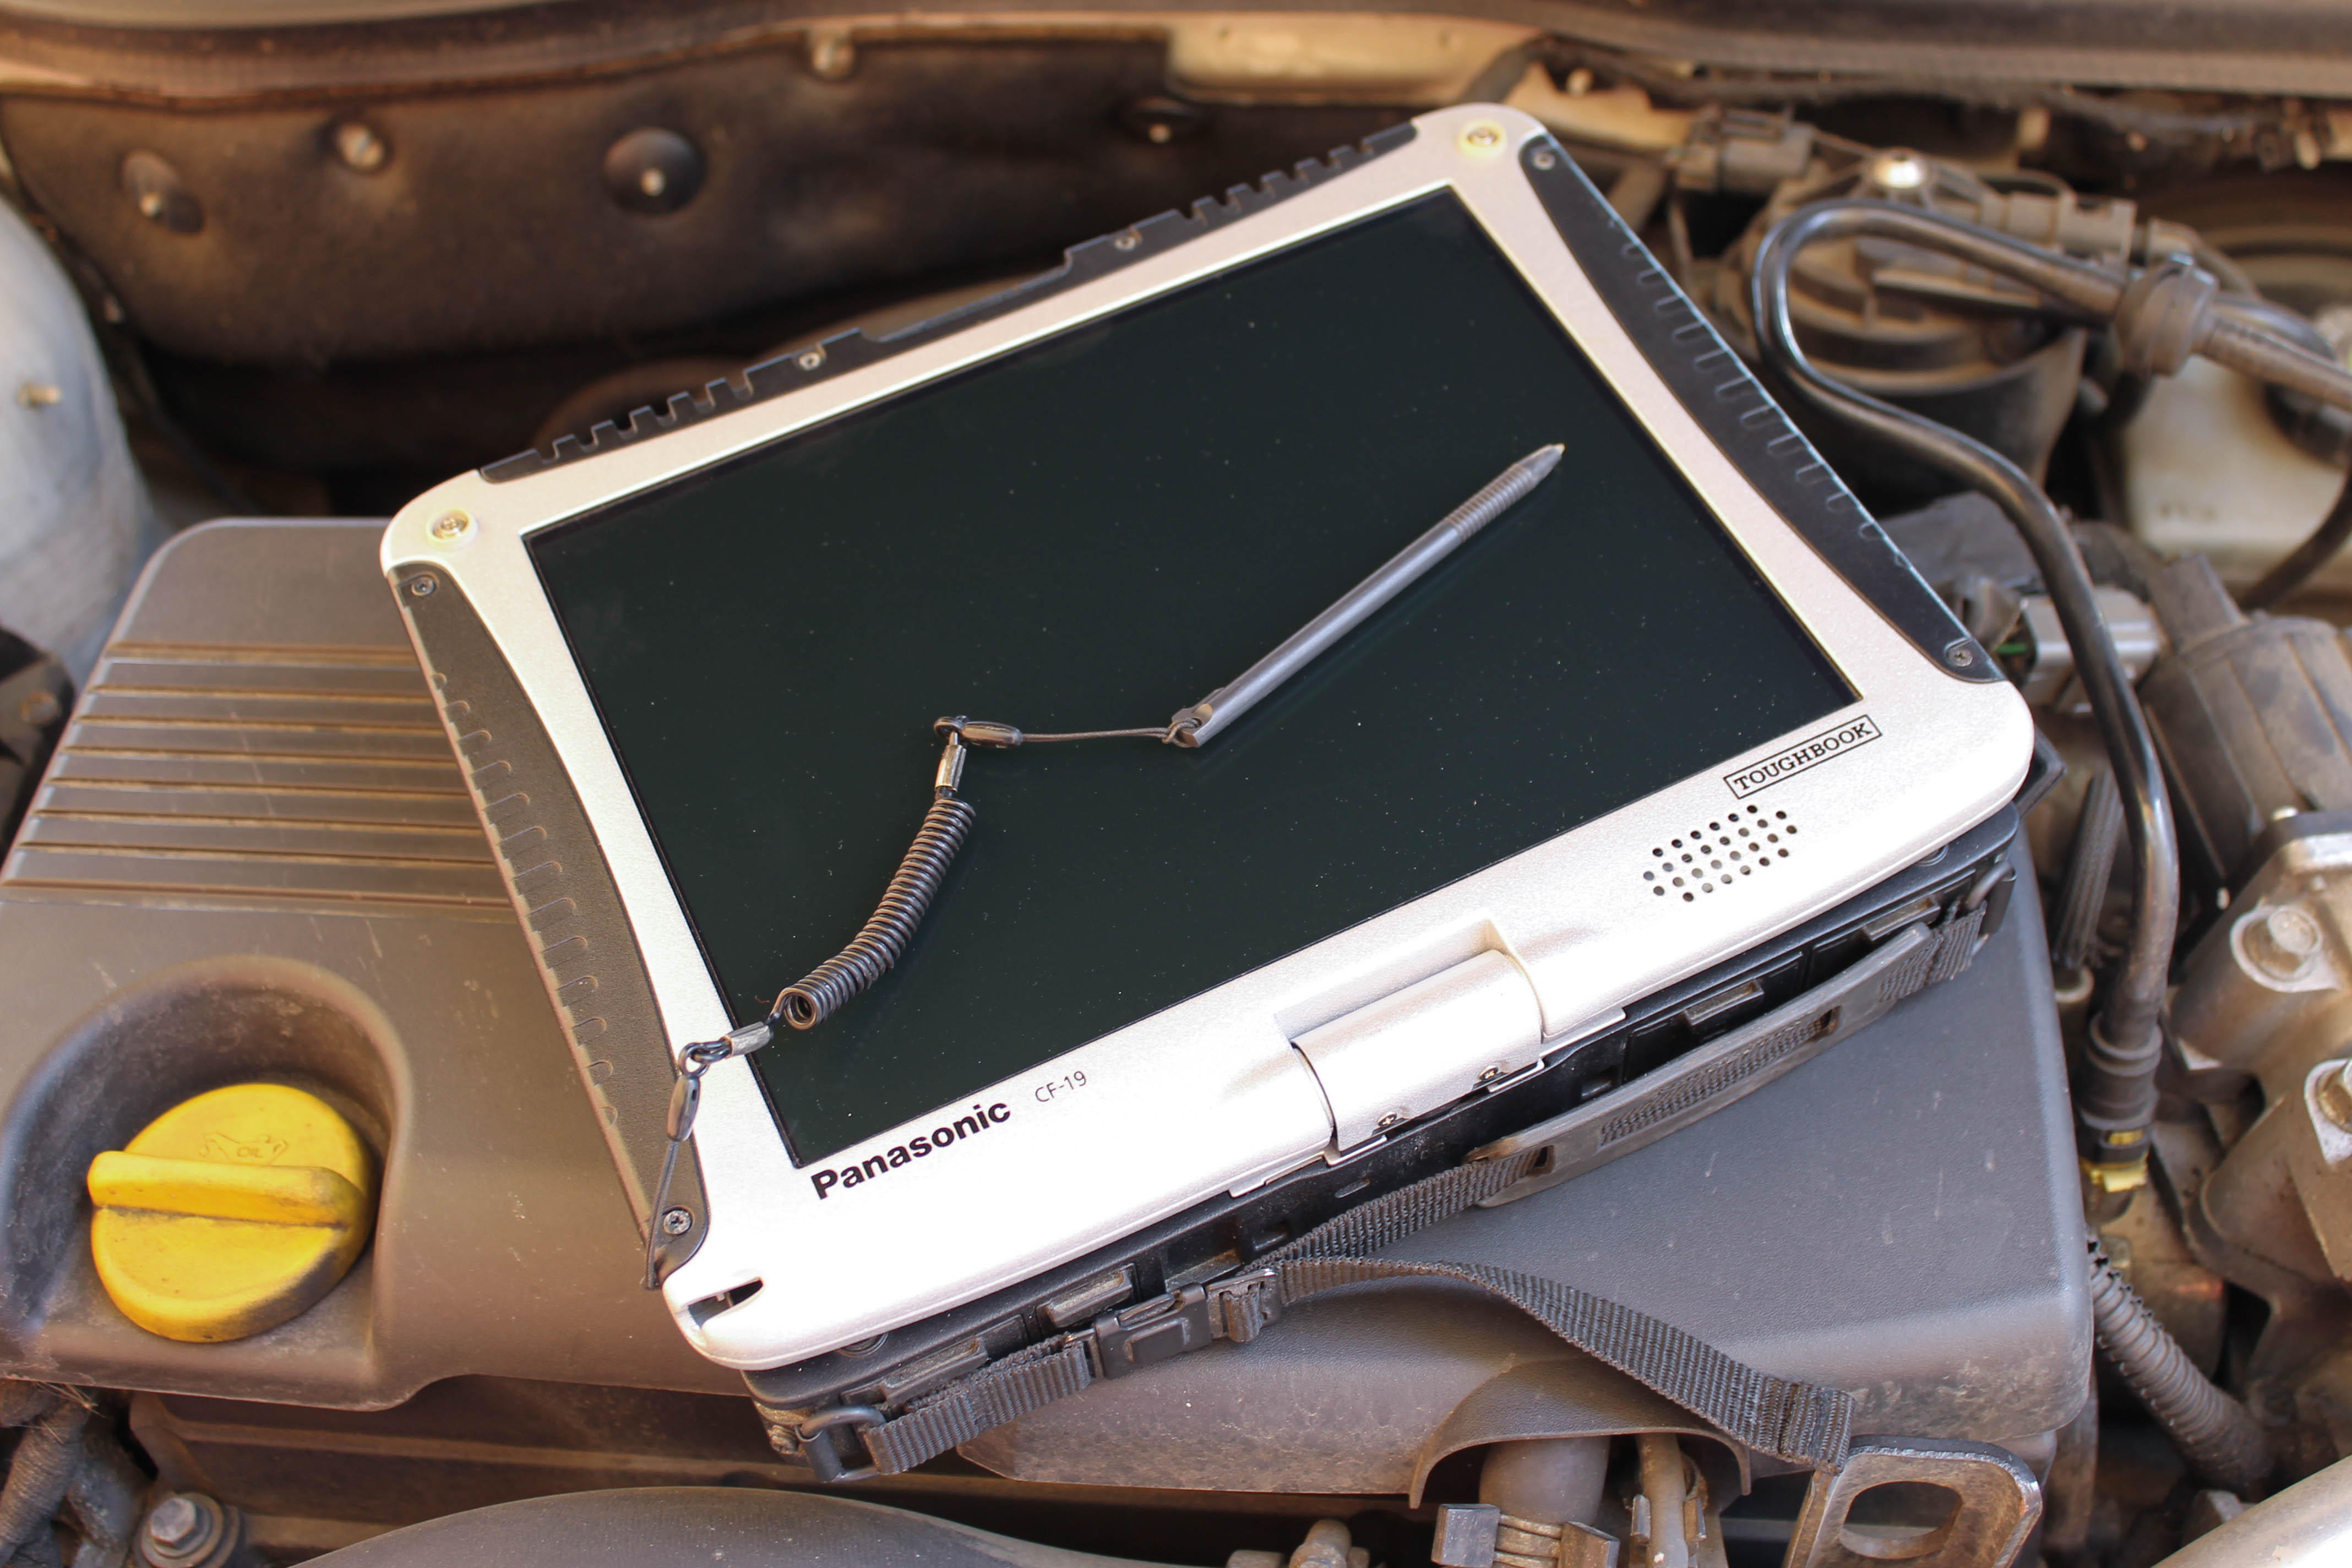 panasonic-toughbook-cf-19-4.jpg